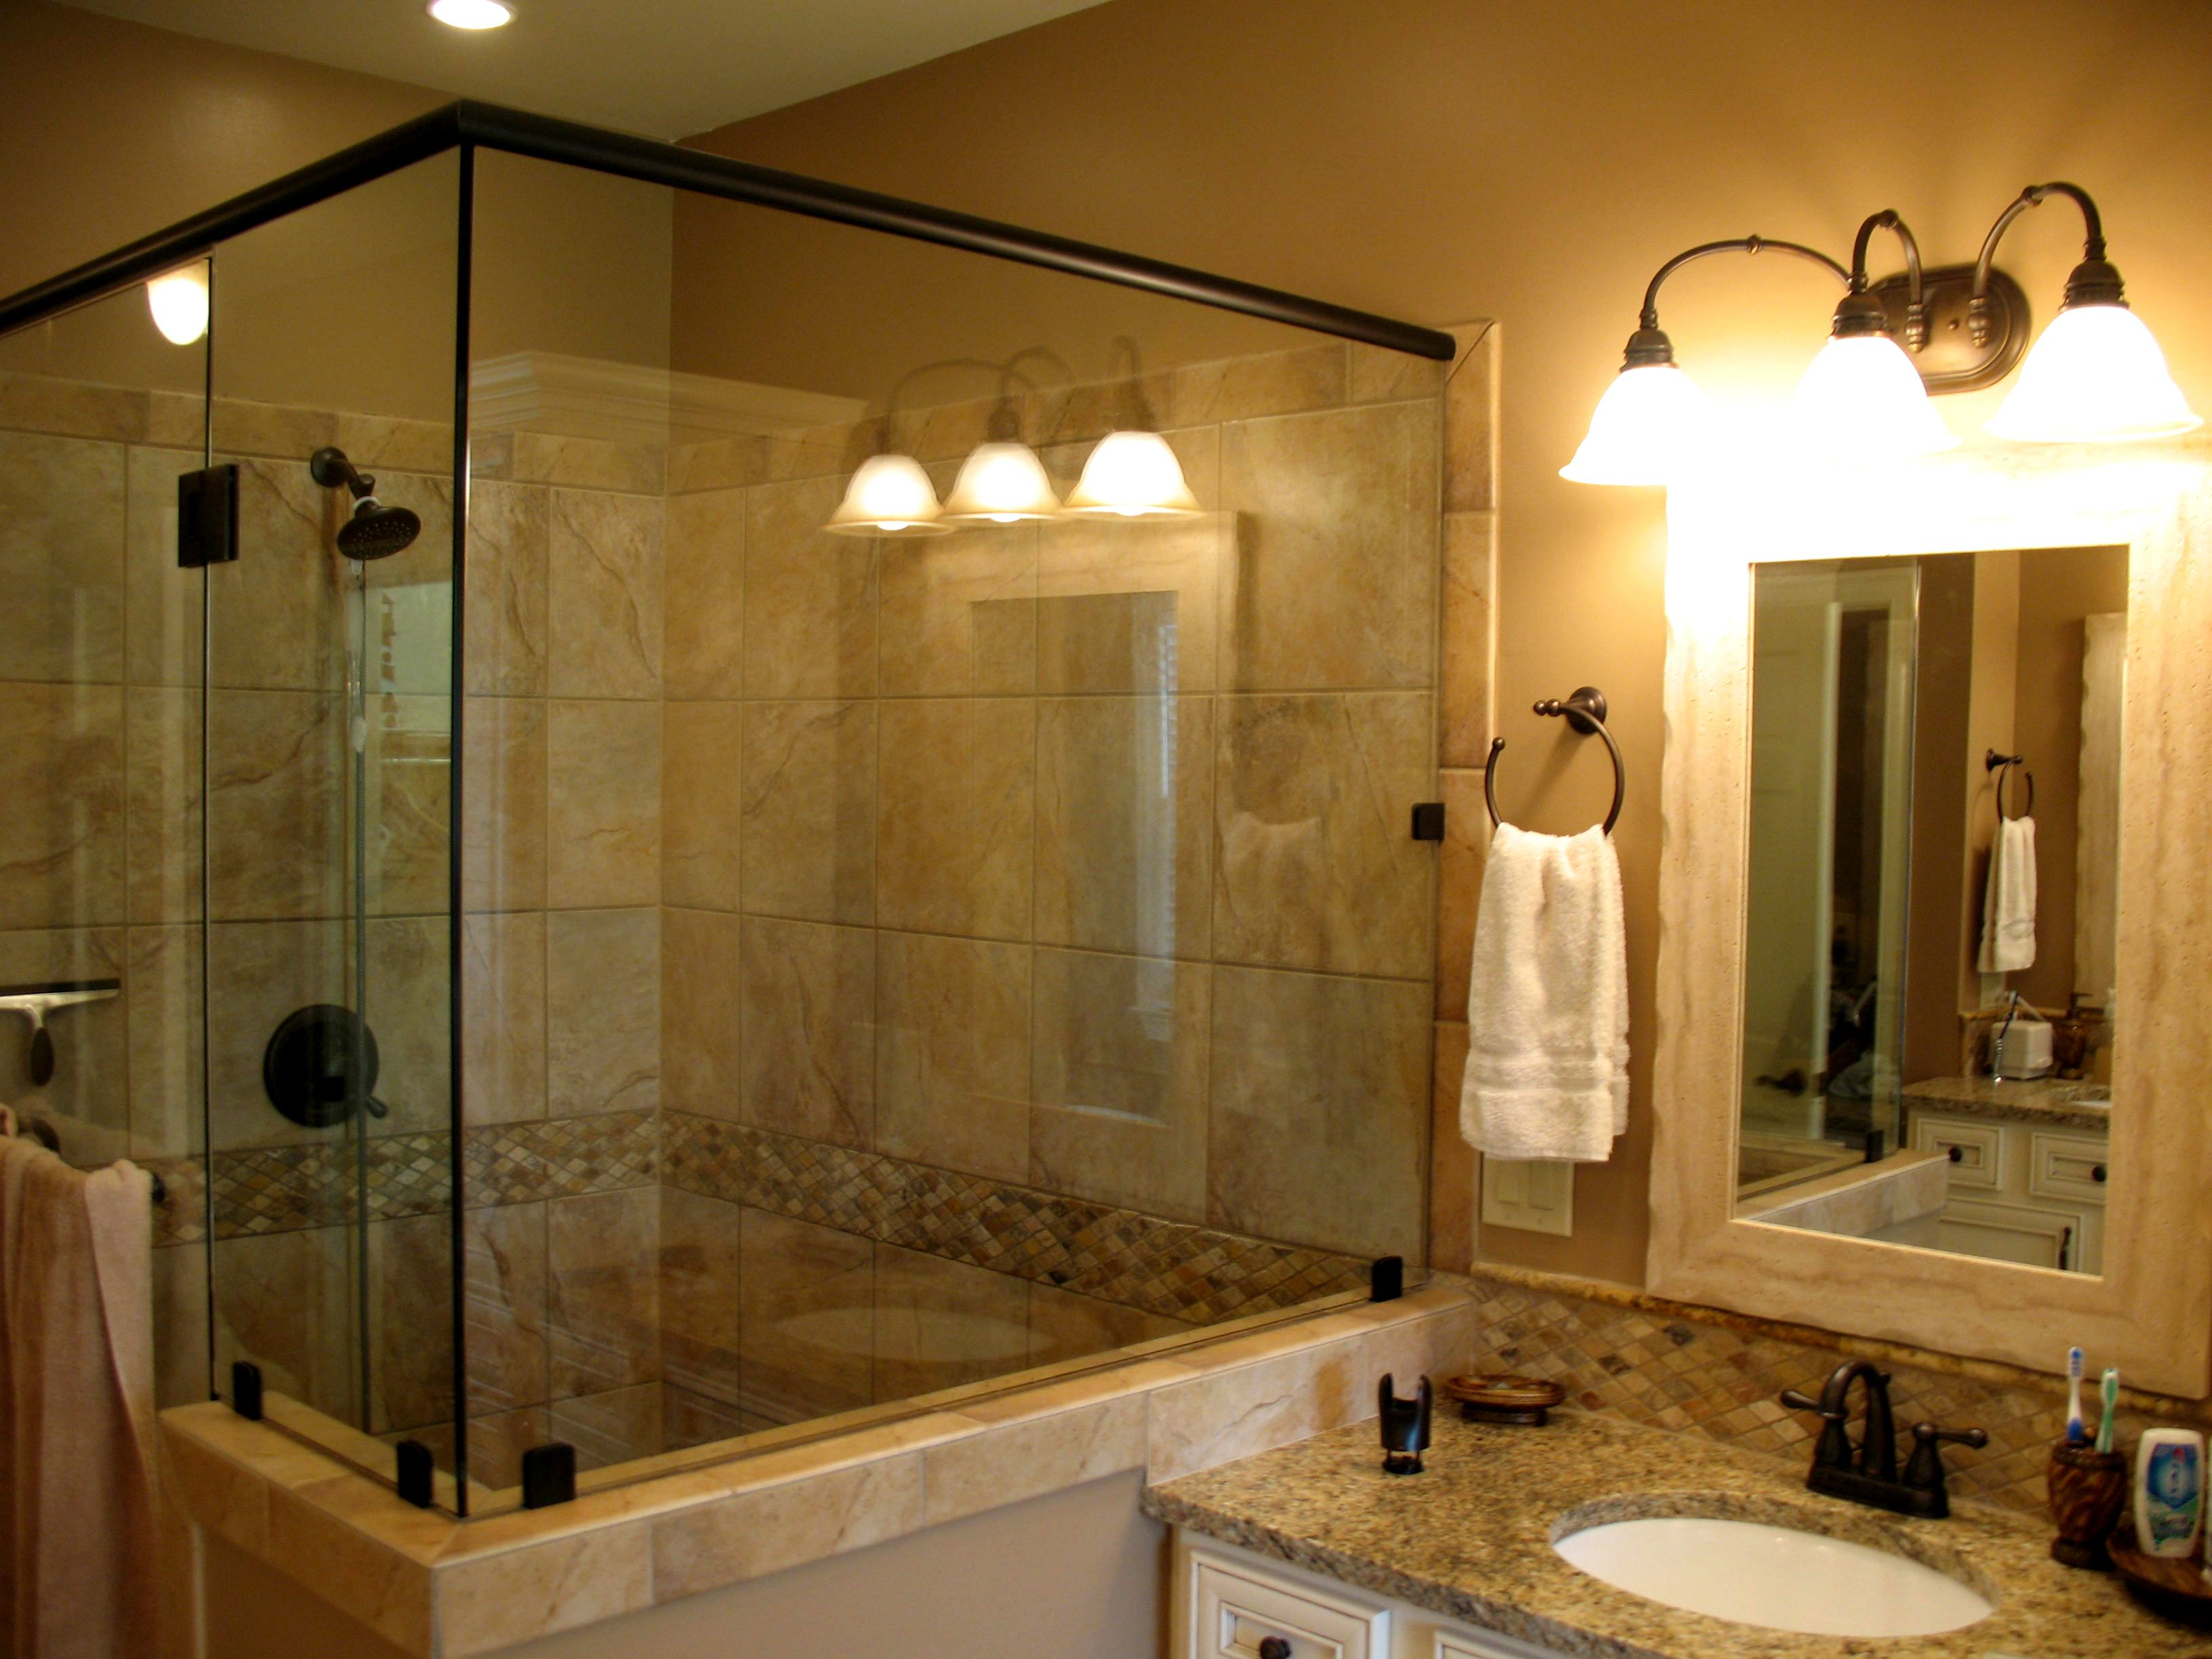 Very Best Small Master Bathroom Remodeling Ideas 3264 x 2448 · 551 kB · jpeg